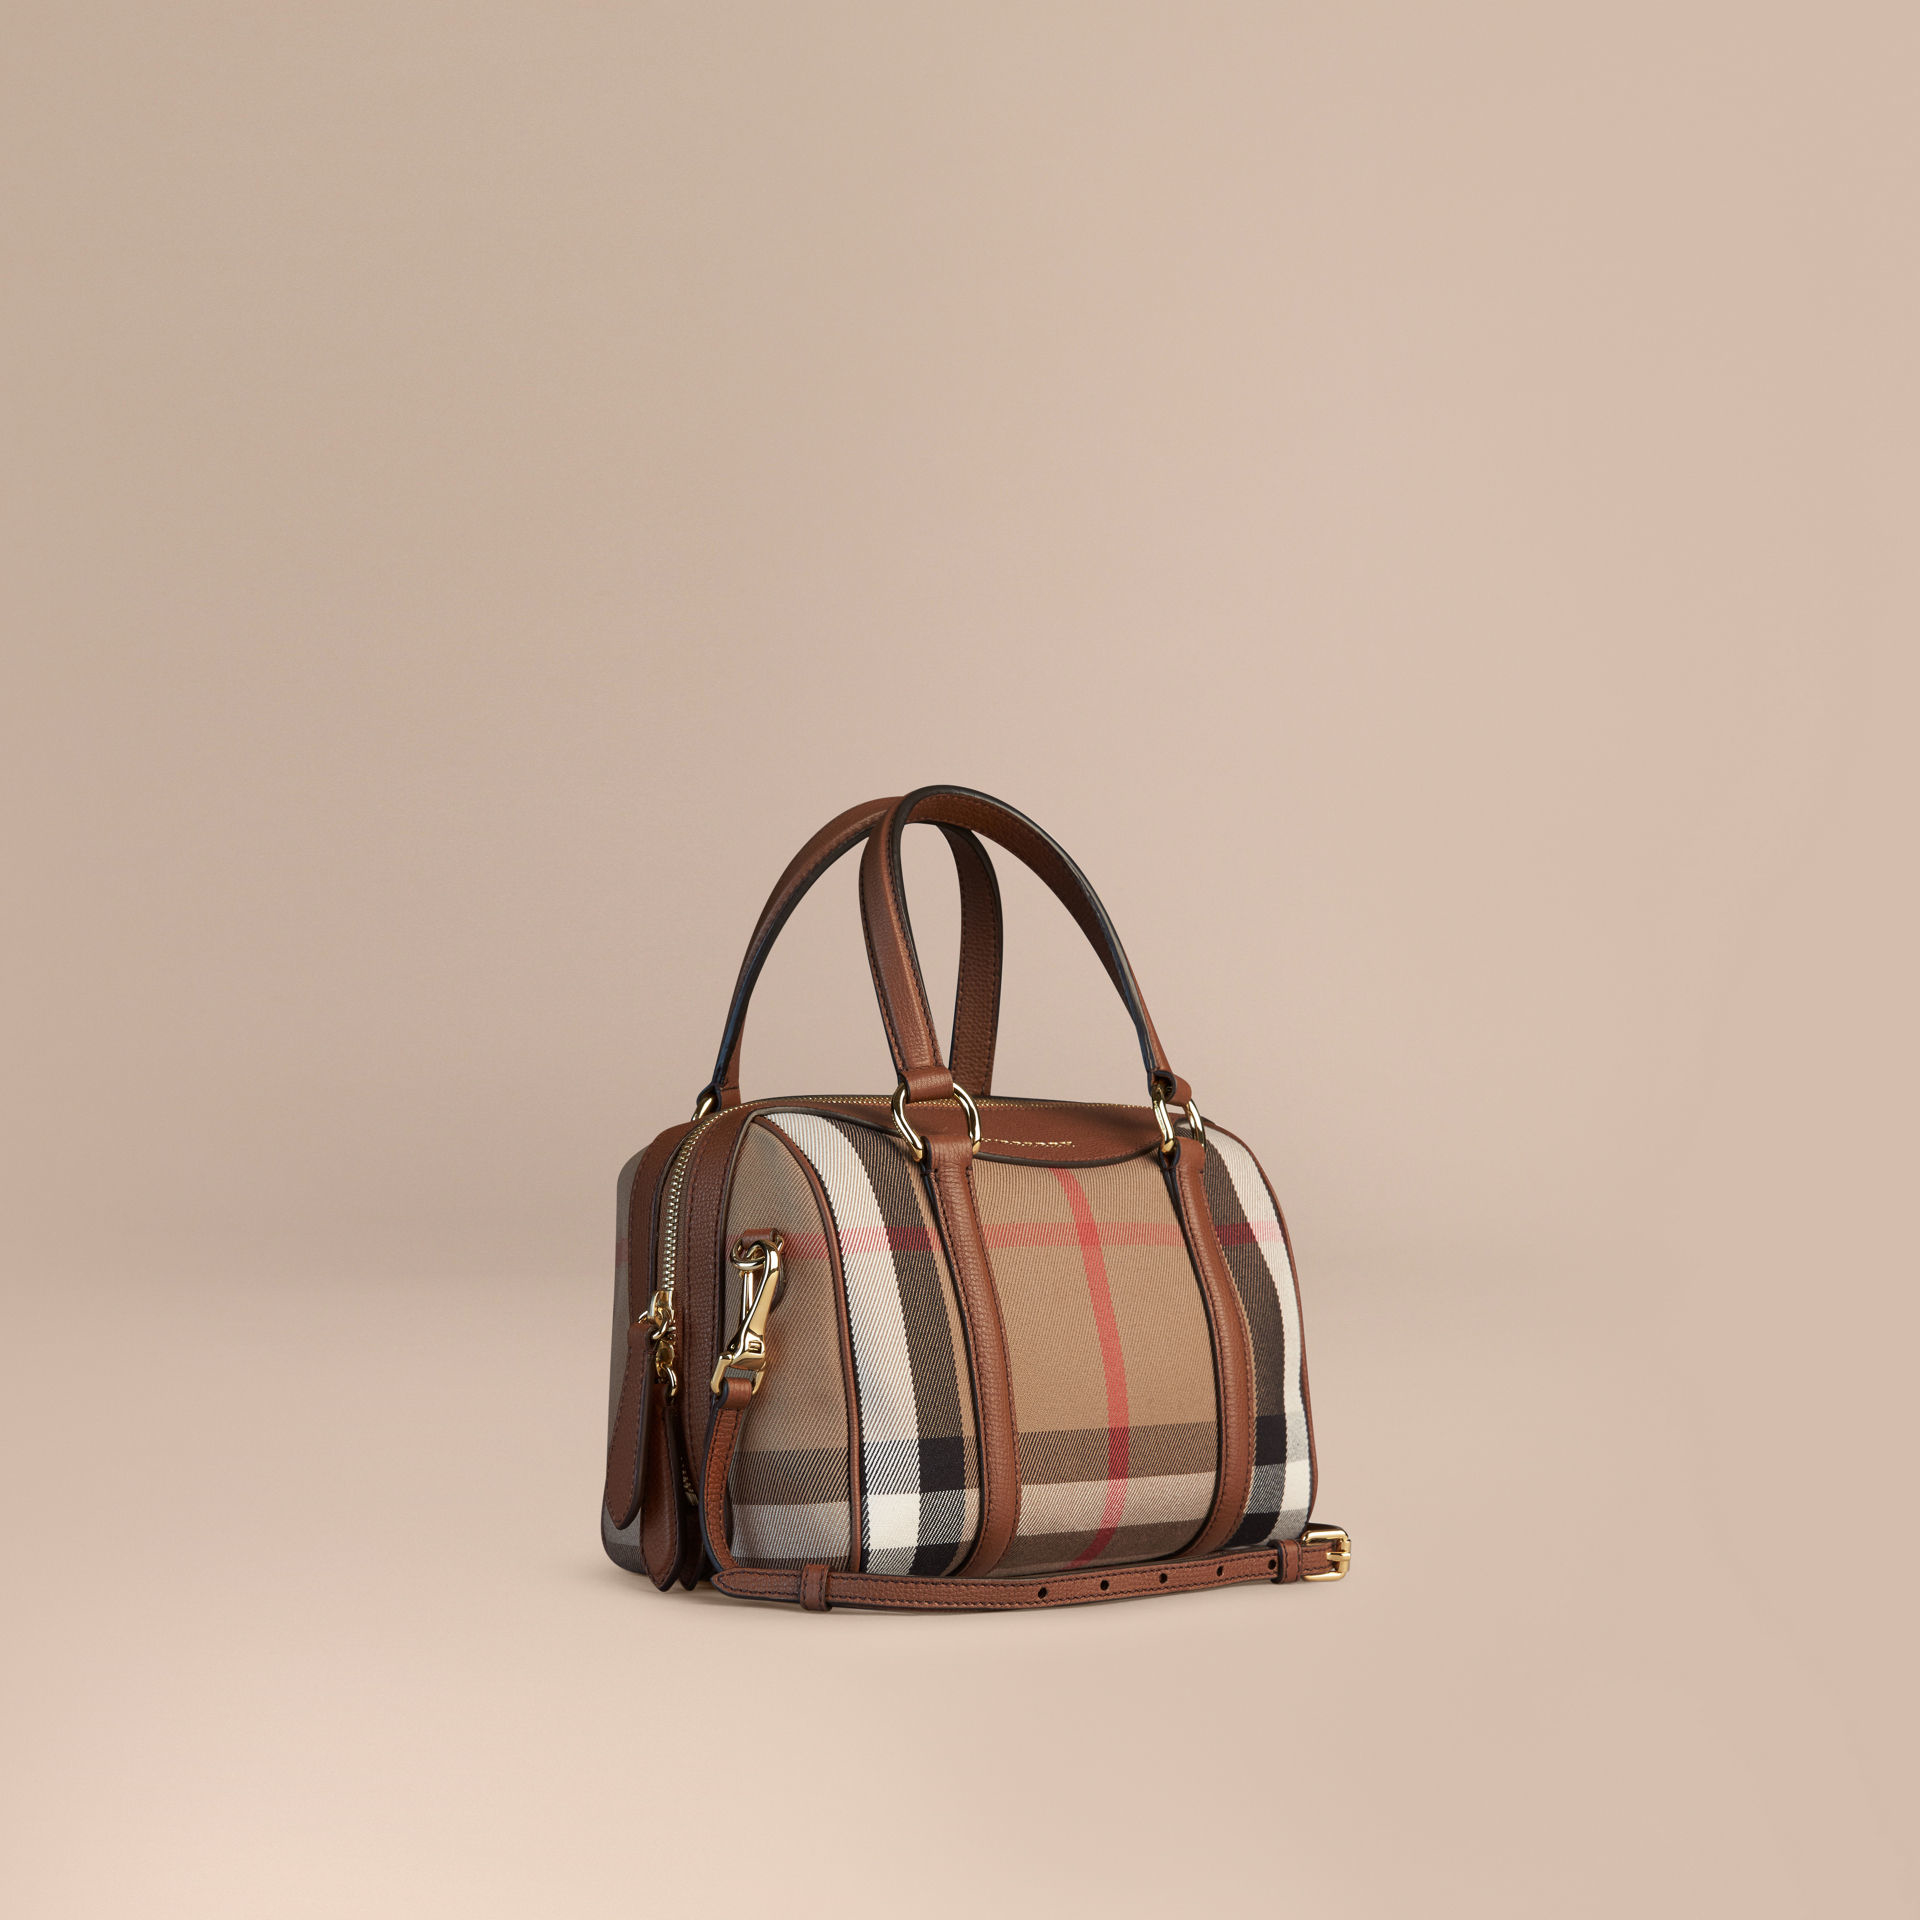 2b03cb7beef5 Lyst - Burberry The Small Alchester In House Check And Leather in Brown